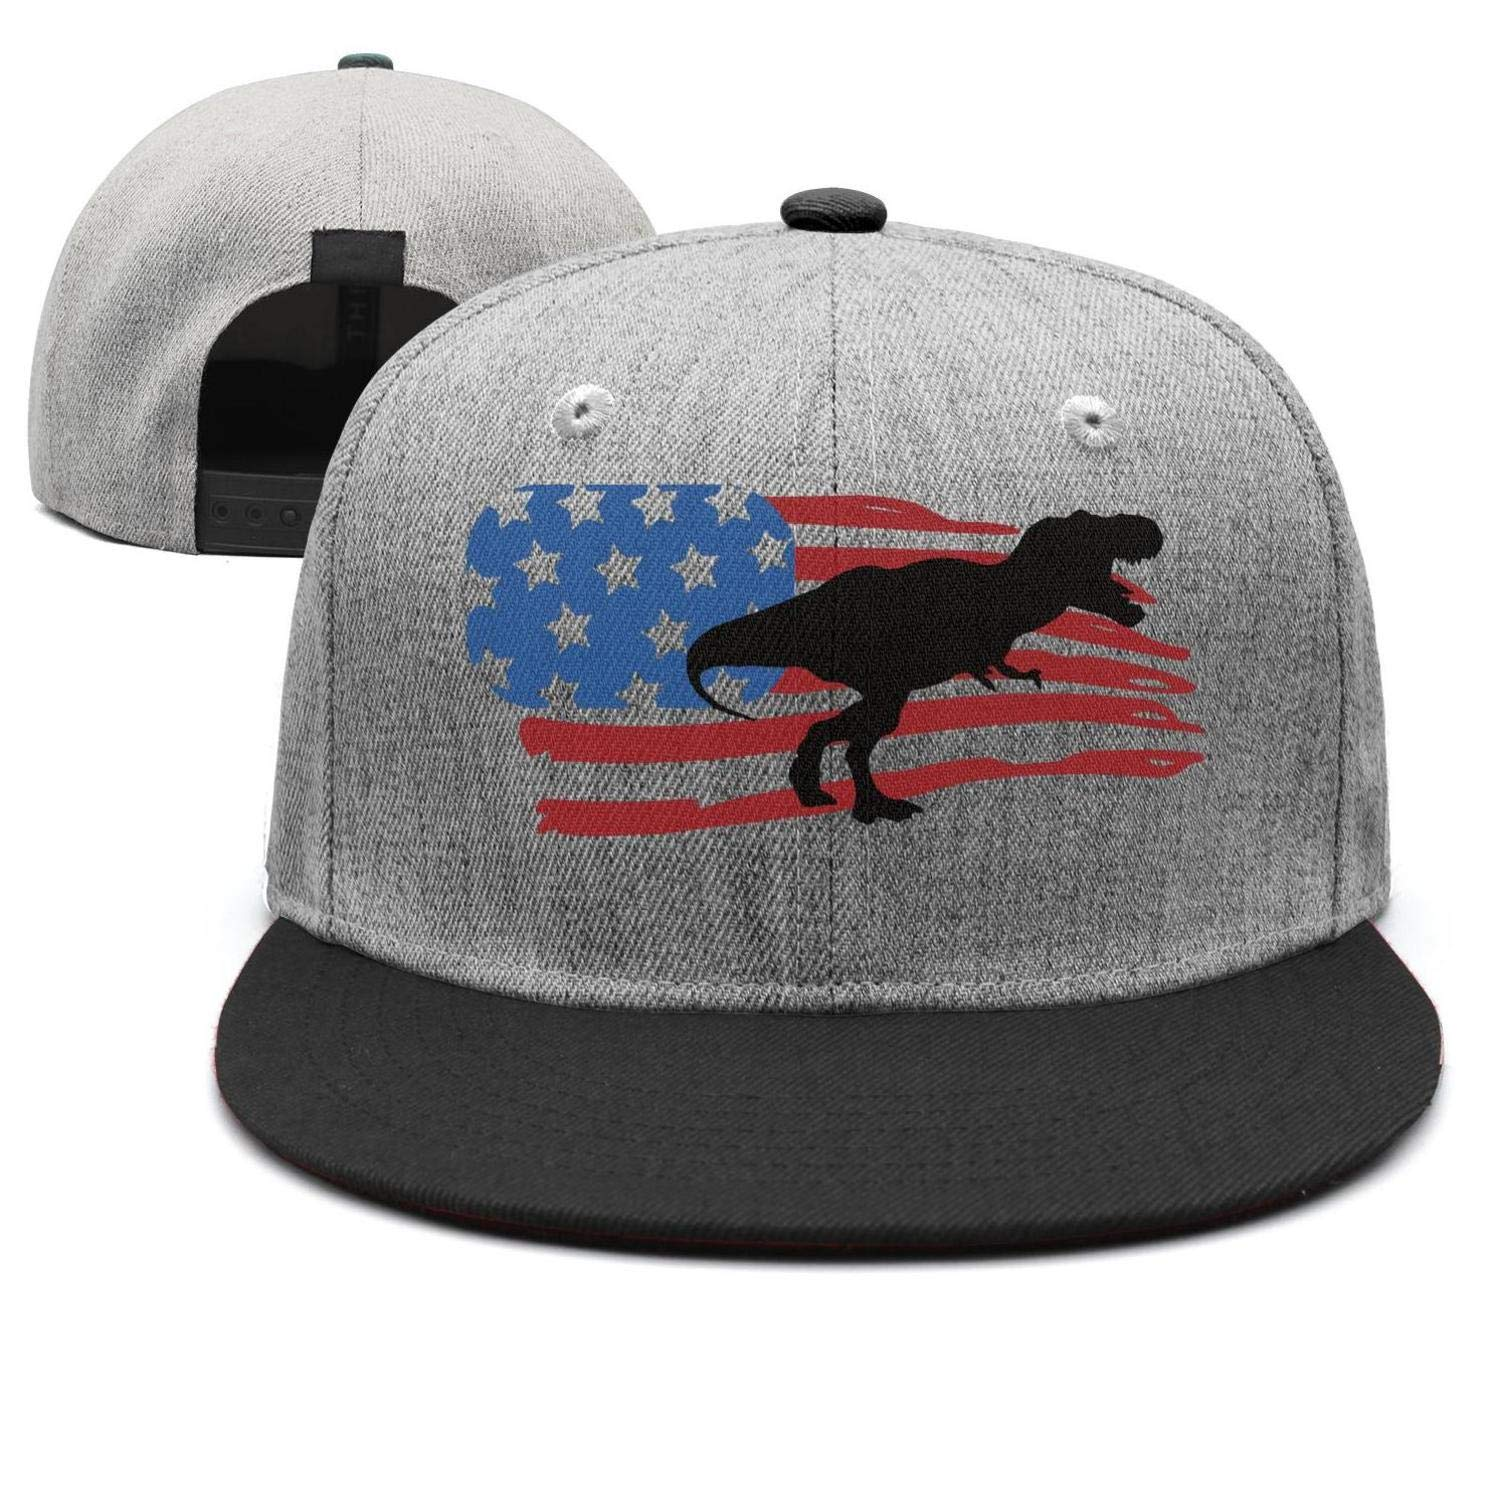 American Flag Dinosaur 4th of July/ Baseball Hat Fitted Unisex Pure Color Summer Sun Hat Dad Hat for Men Women One Size